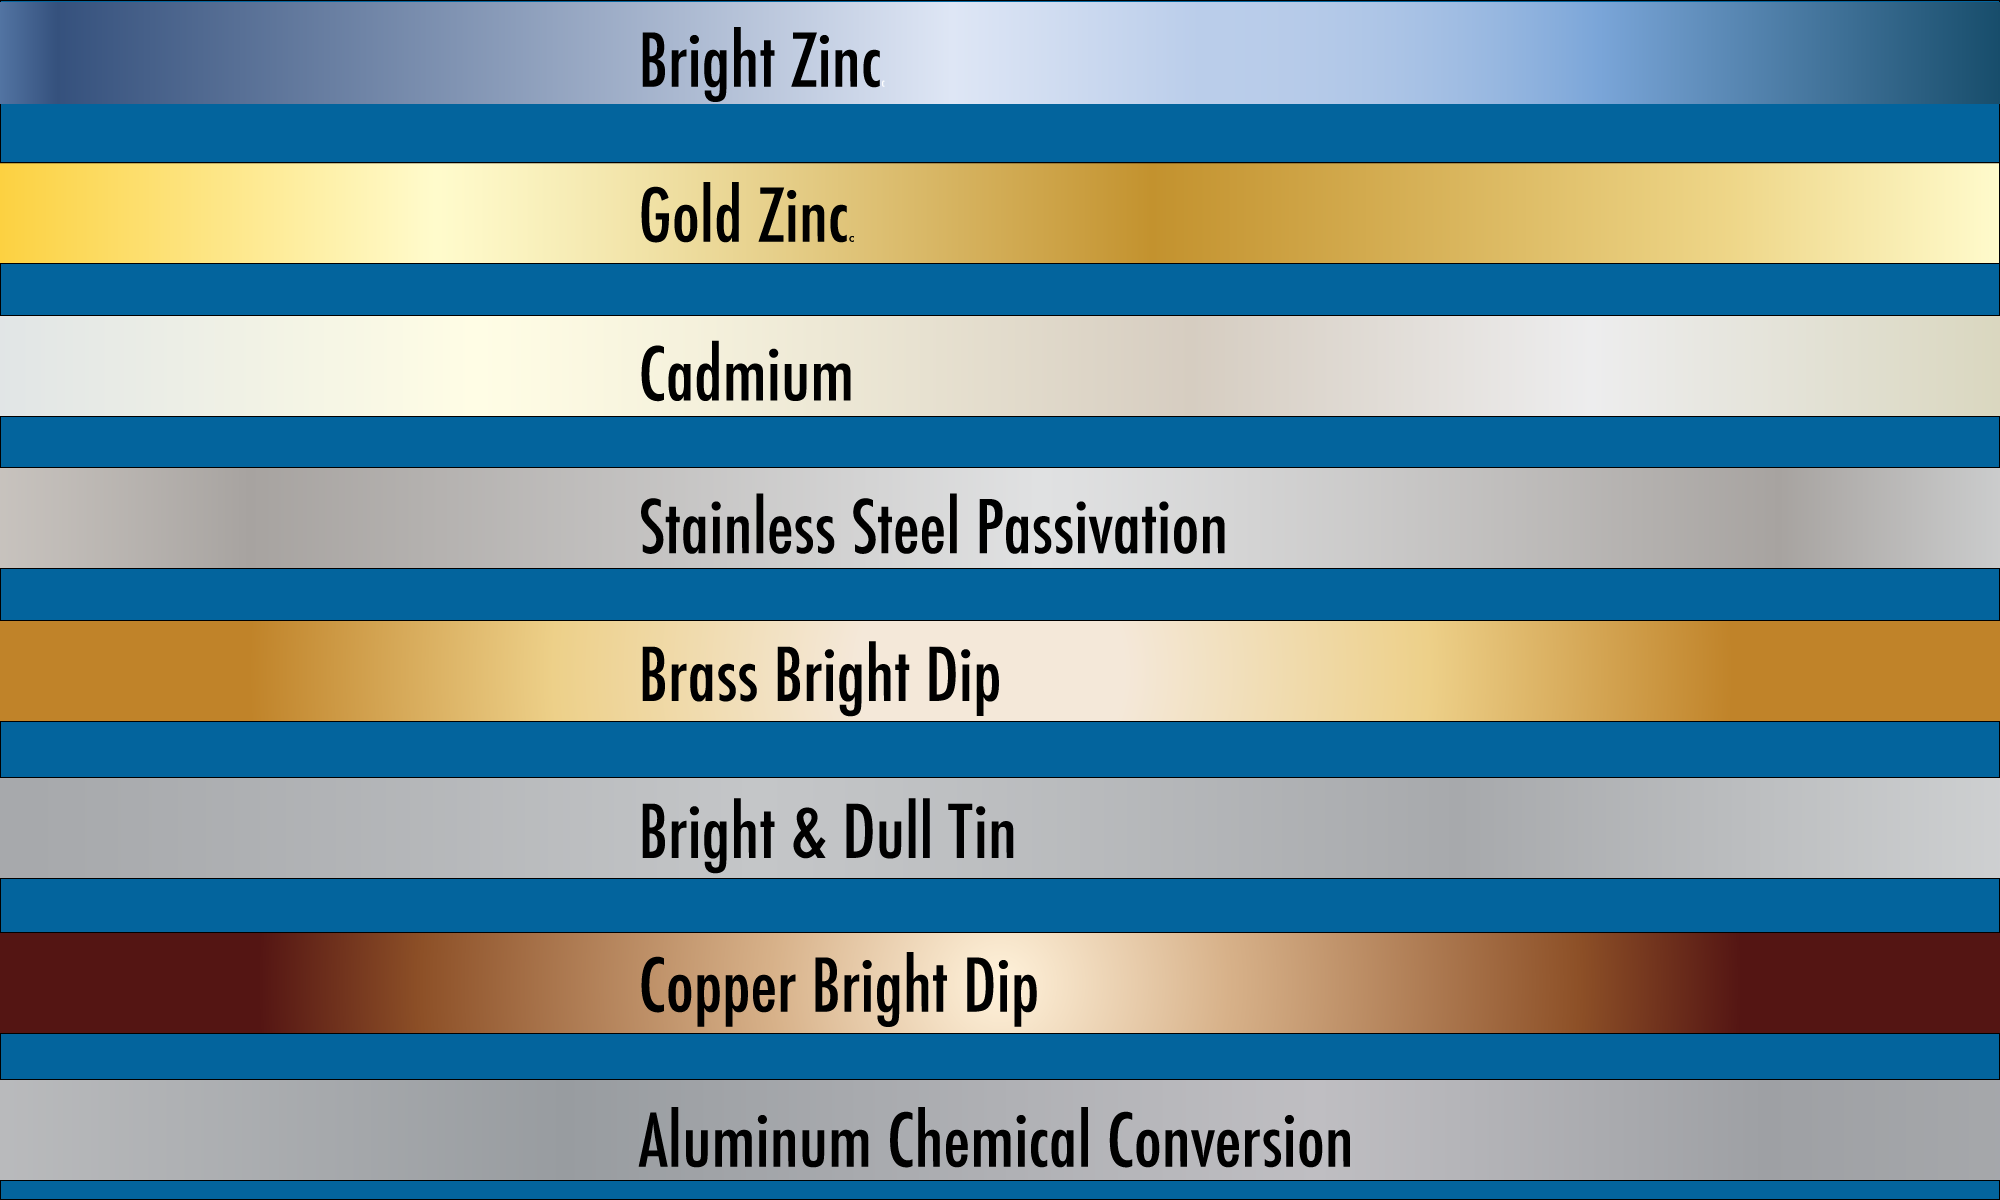 Metal gradients representing electroplating services